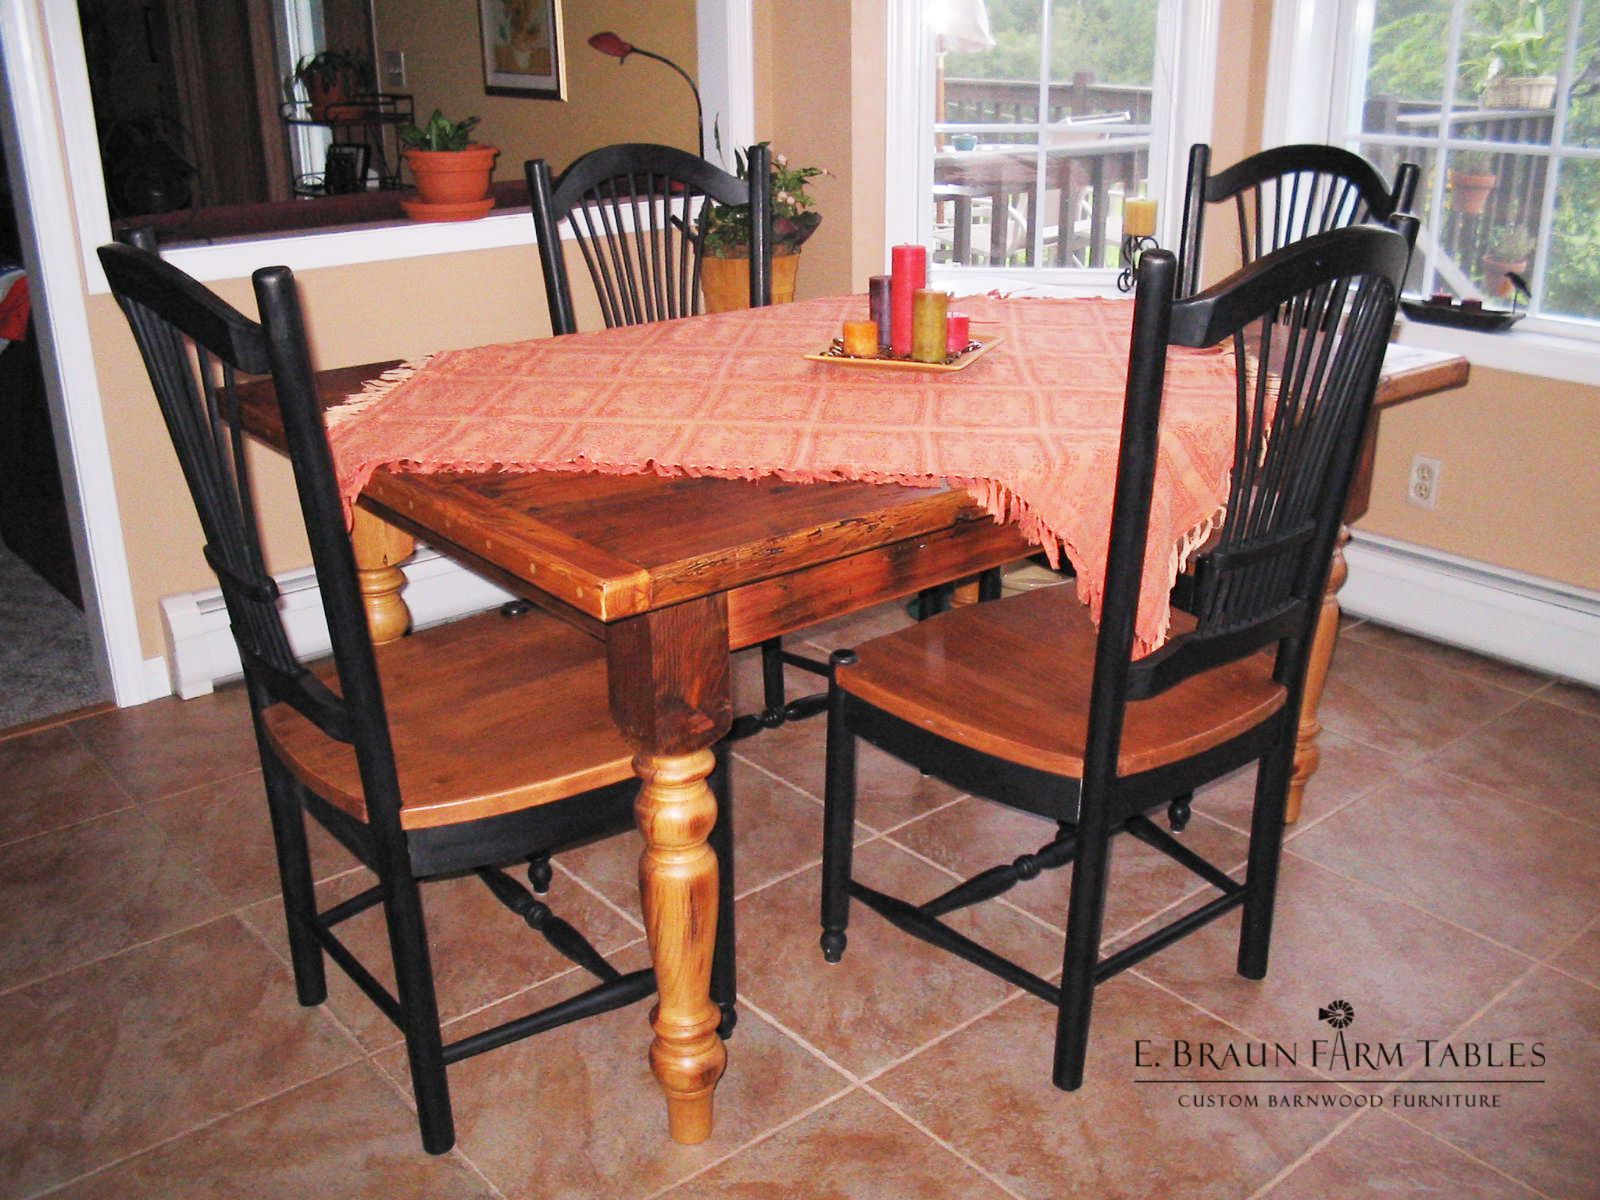 country dining table, crafted by E. Braun Farm Tables and